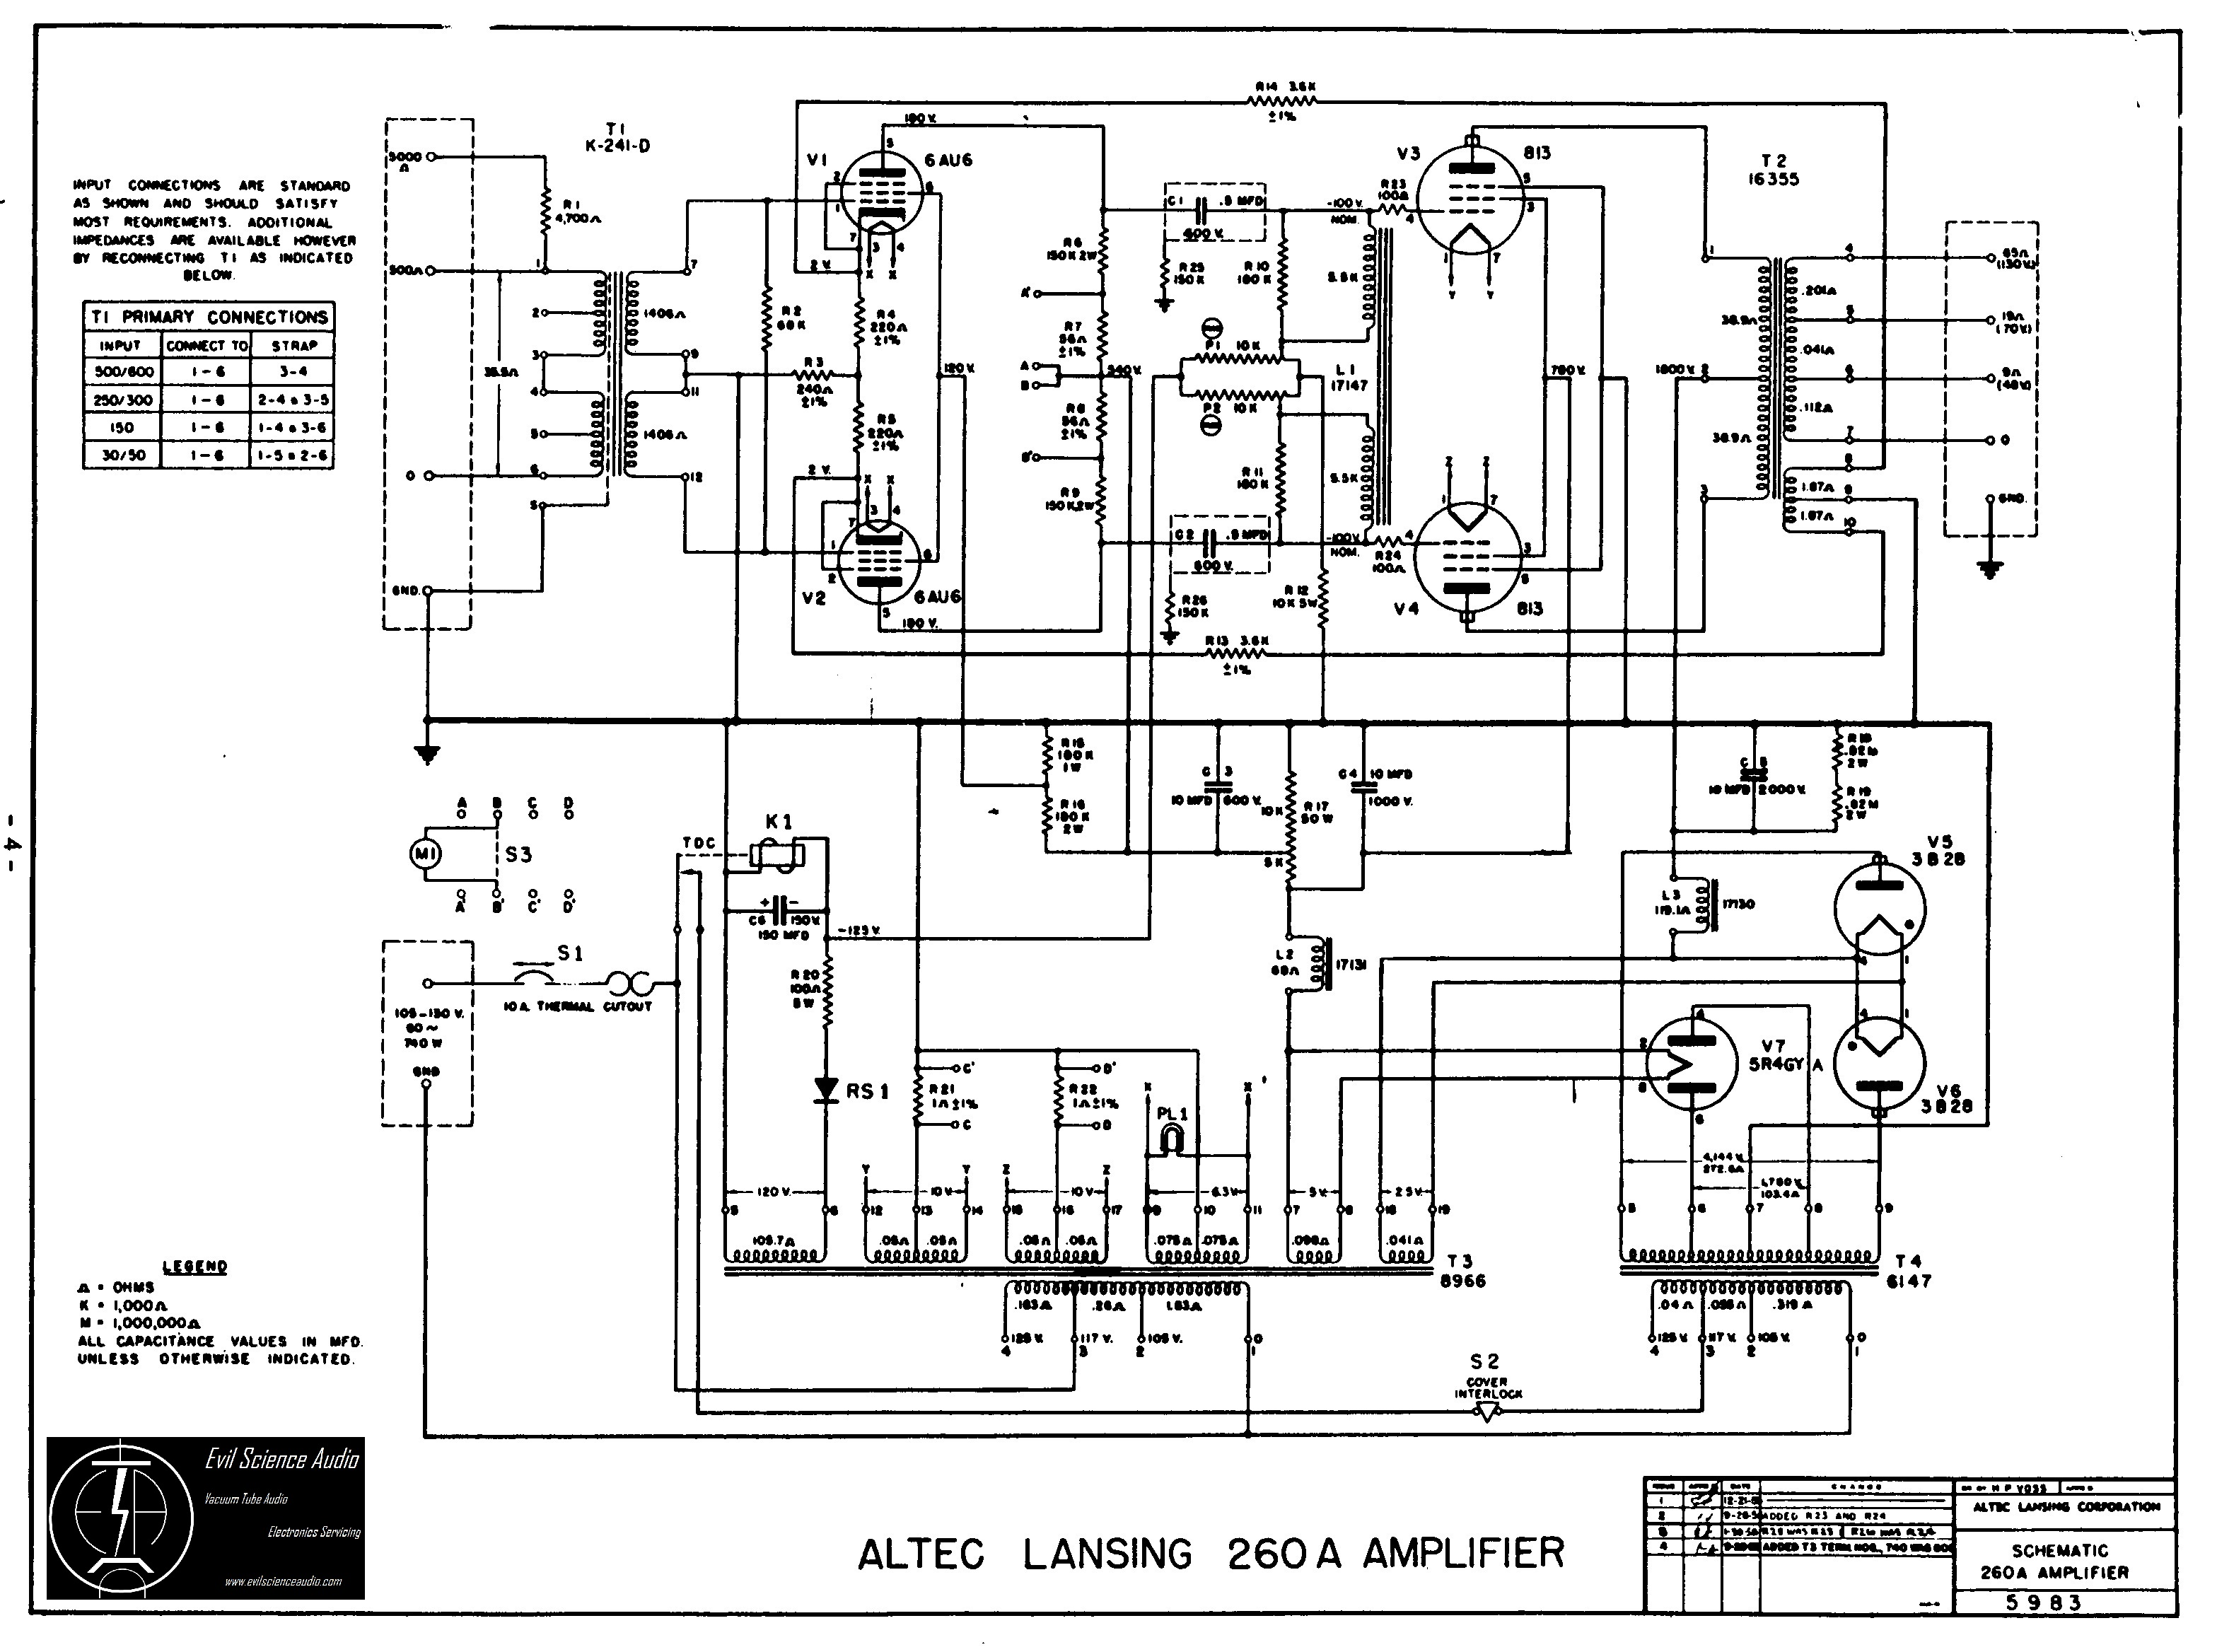 Wiring Schematics For The Mq 9a